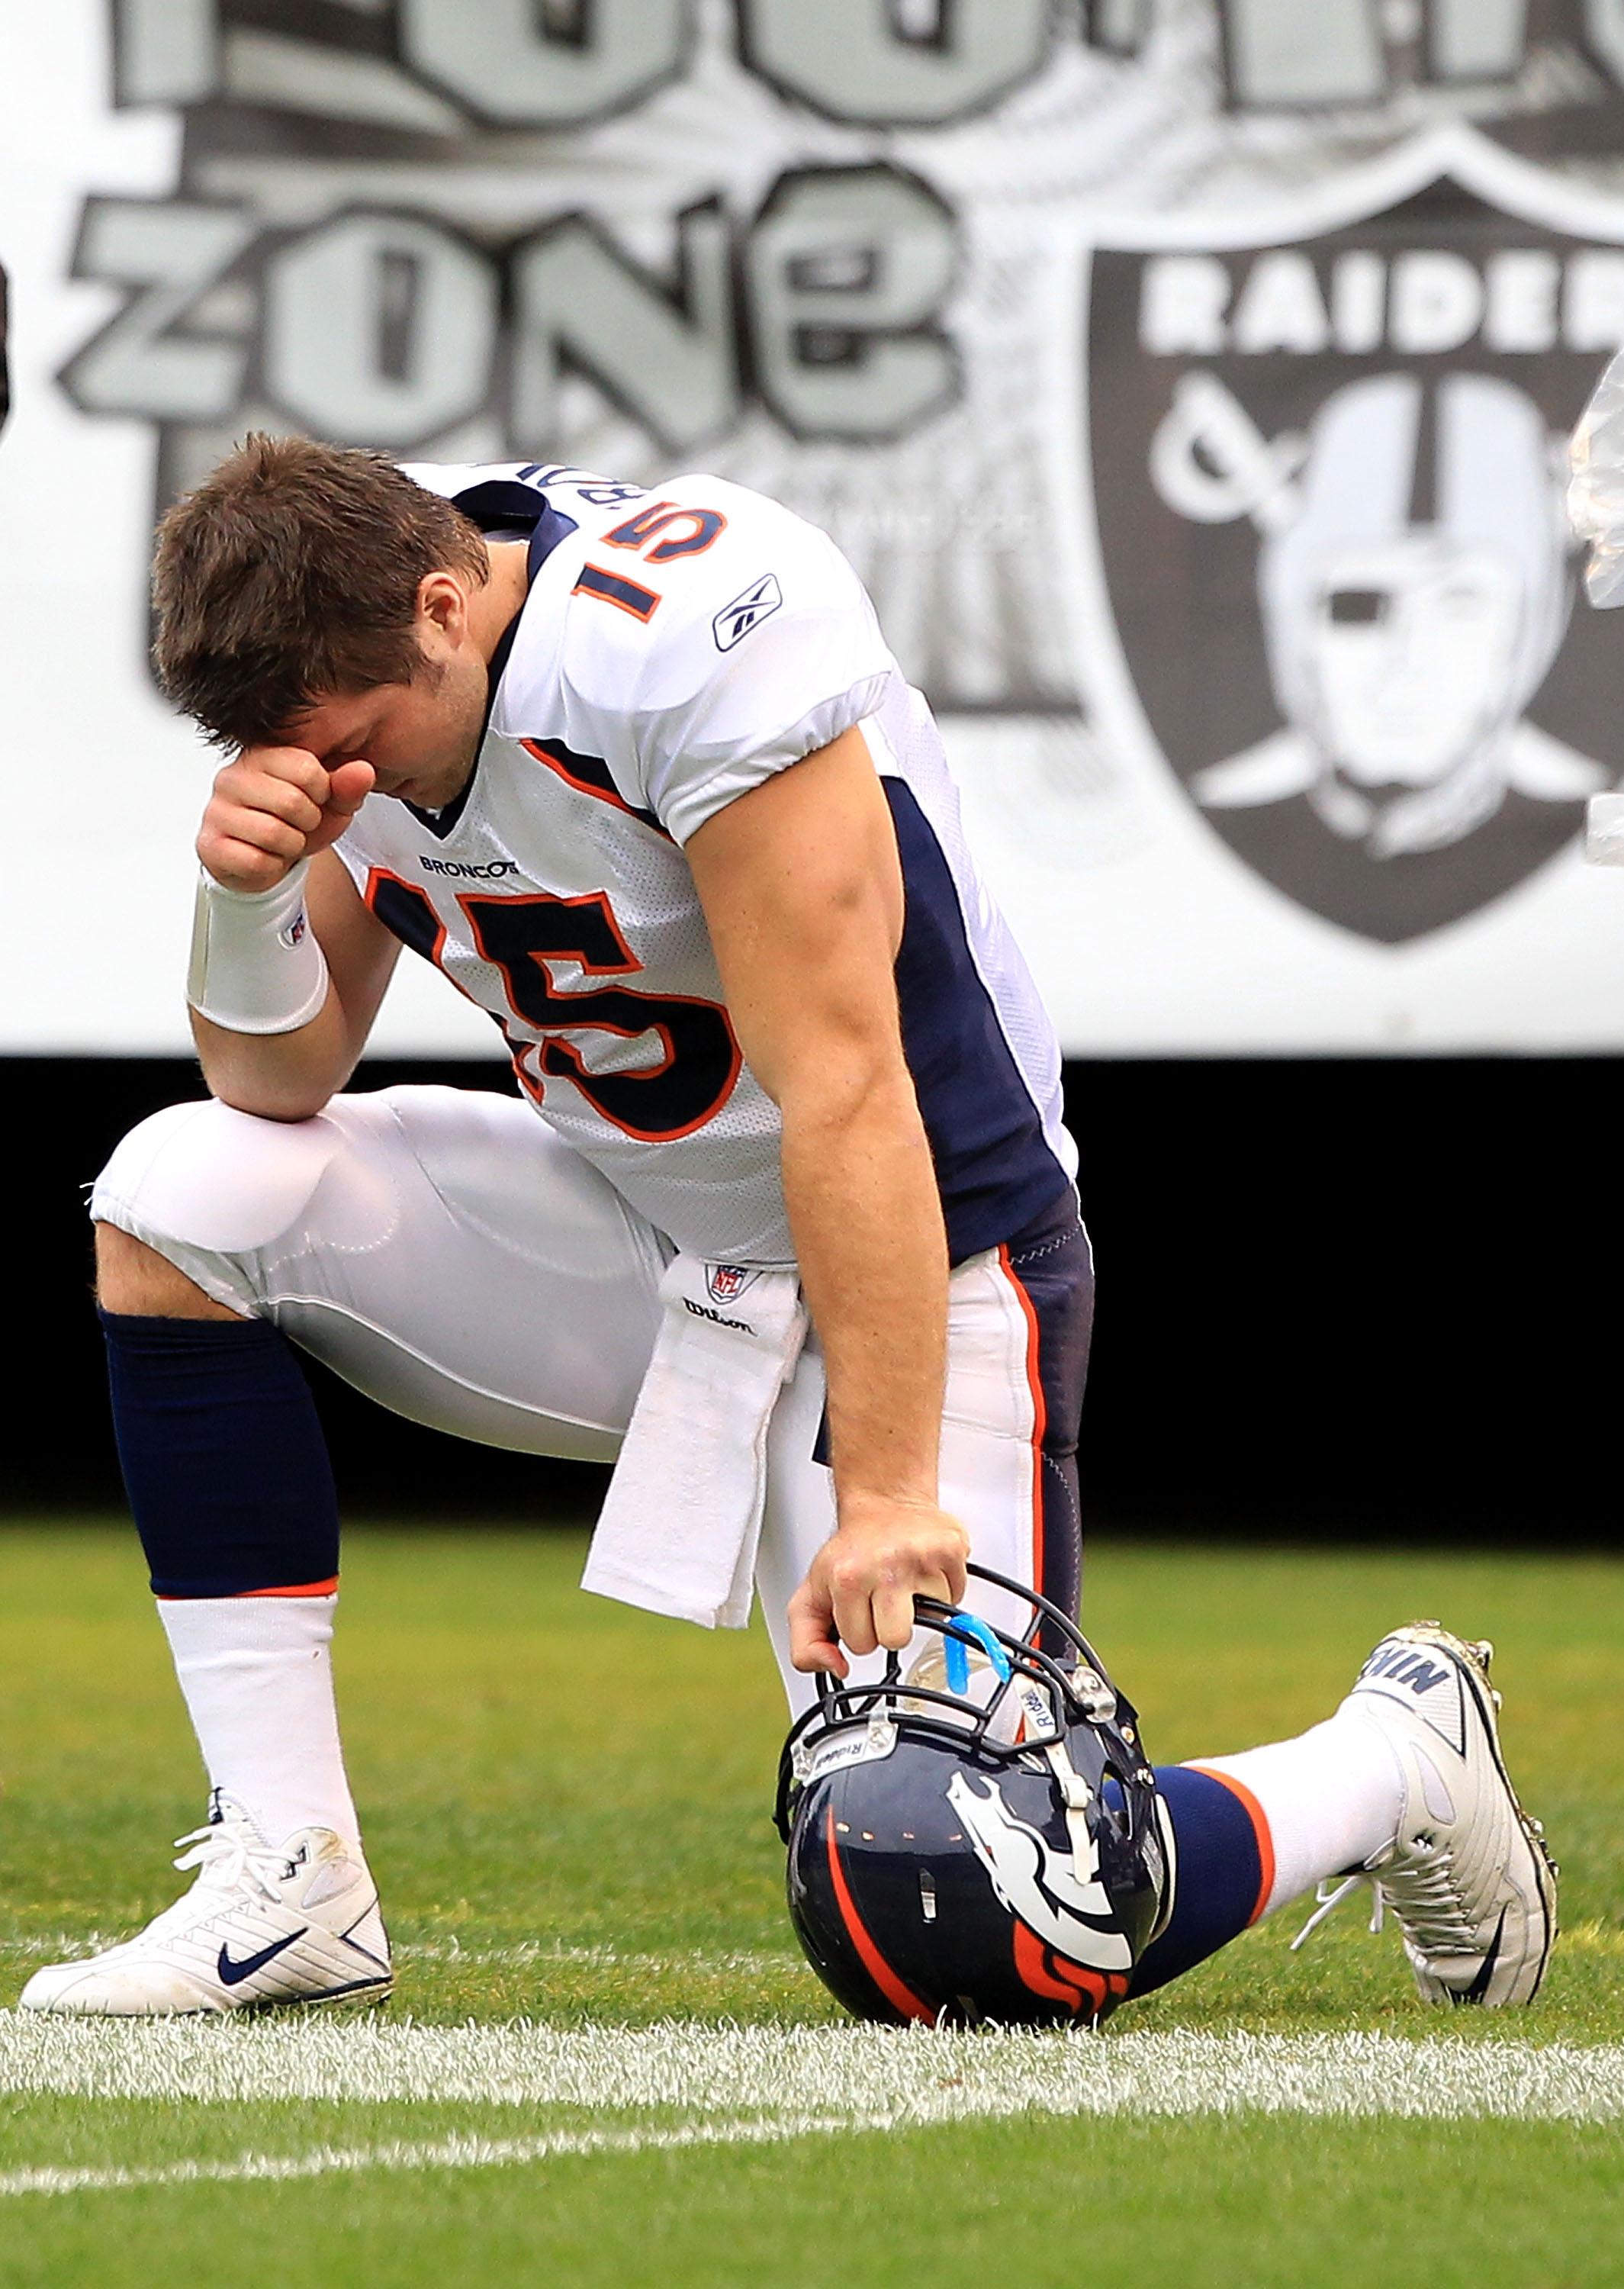 OAKLAND, CA - DECEMBER 19:  Tim Tebow #15 of the Denver Broncos kneels on the ground before their game against the Oakland Raiders at Oakland-Alameda County Coliseum on December 19, 2010 in Oakland, California.  (Photo by Ezra Shaw/Getty Images)